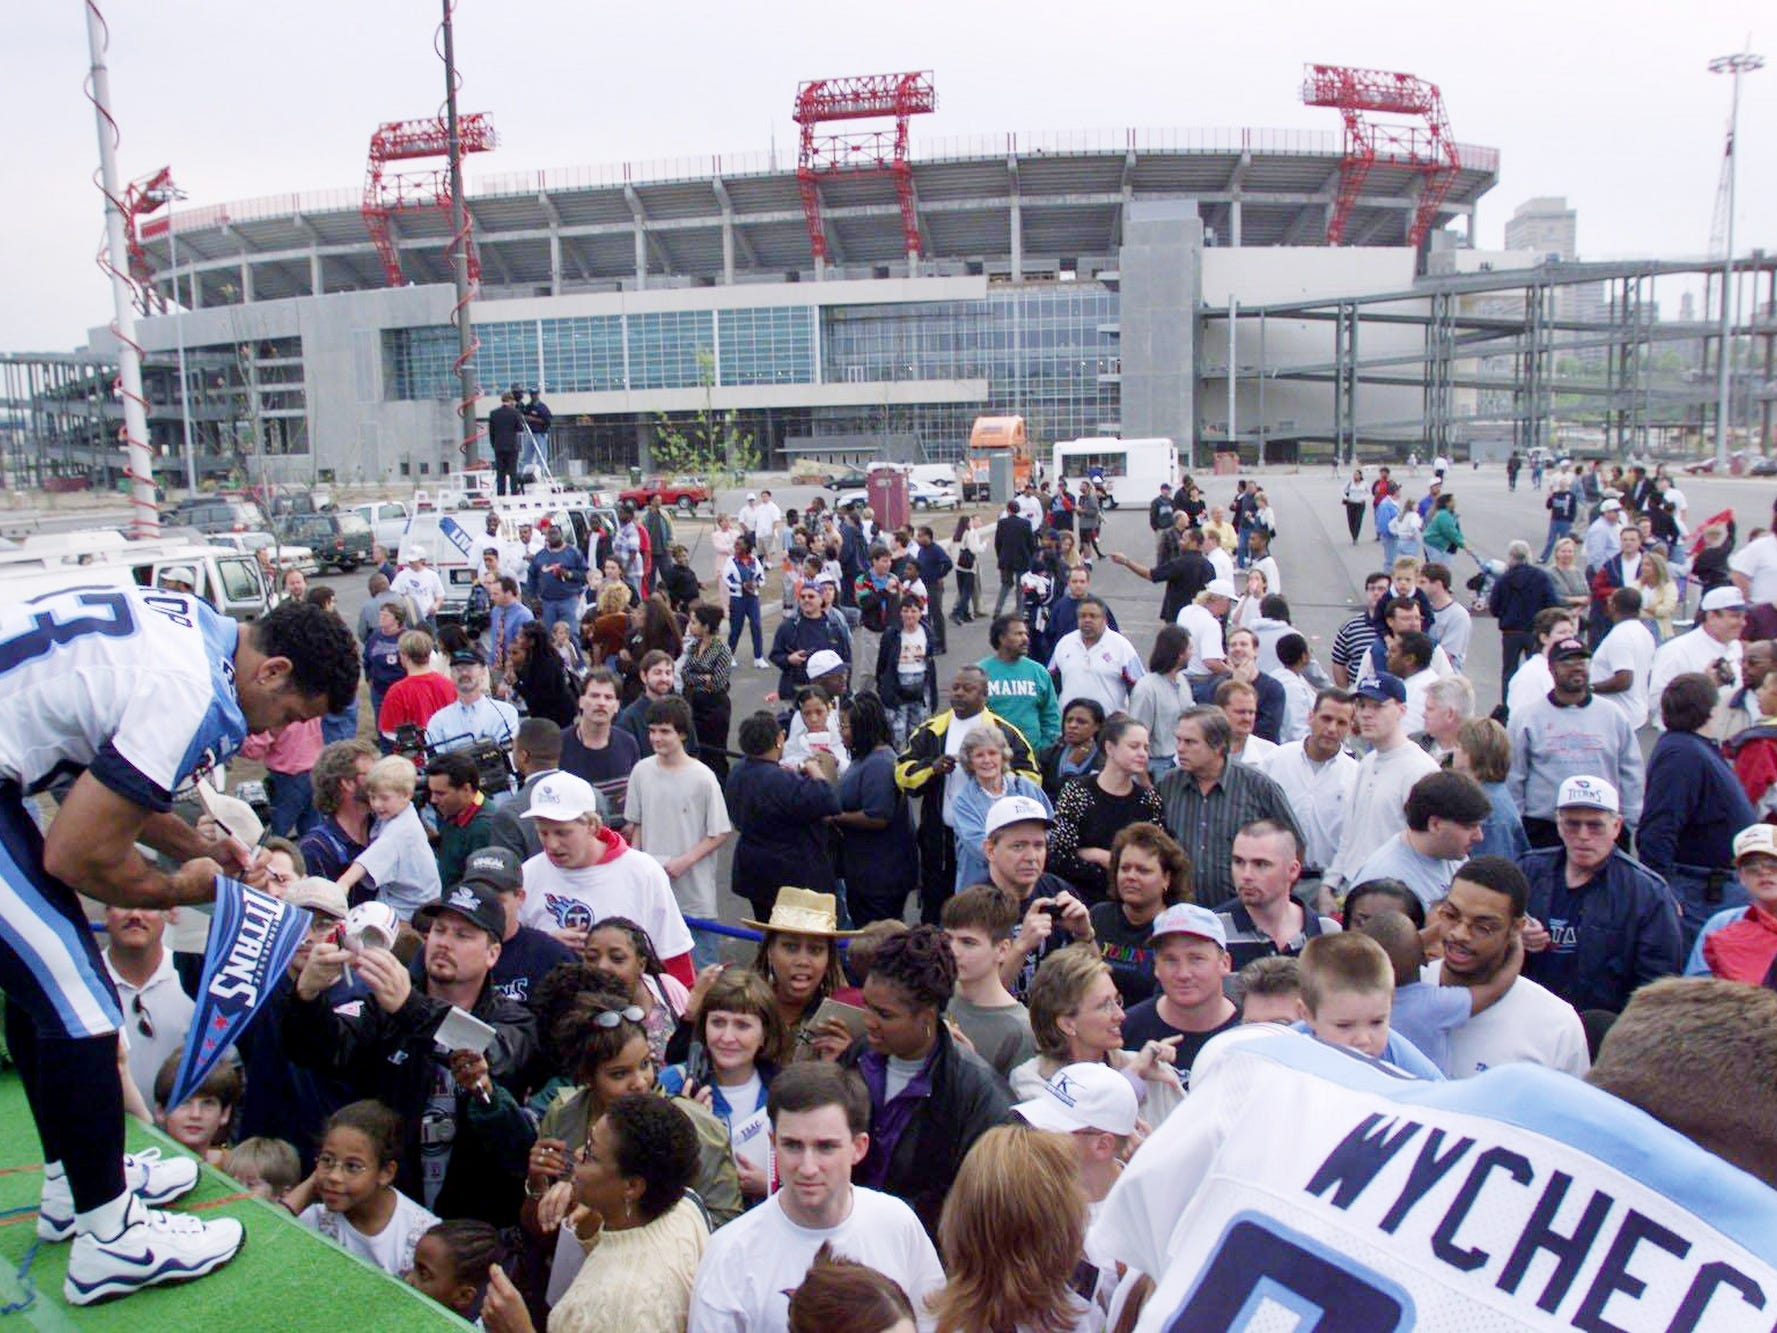 Tennessee Titans safety Blaine Bishop, left, and tight end Frank Wycheck sign autographs after the team's new uniforms were unveiled outside the East Bank Stadium April 13, 1999.